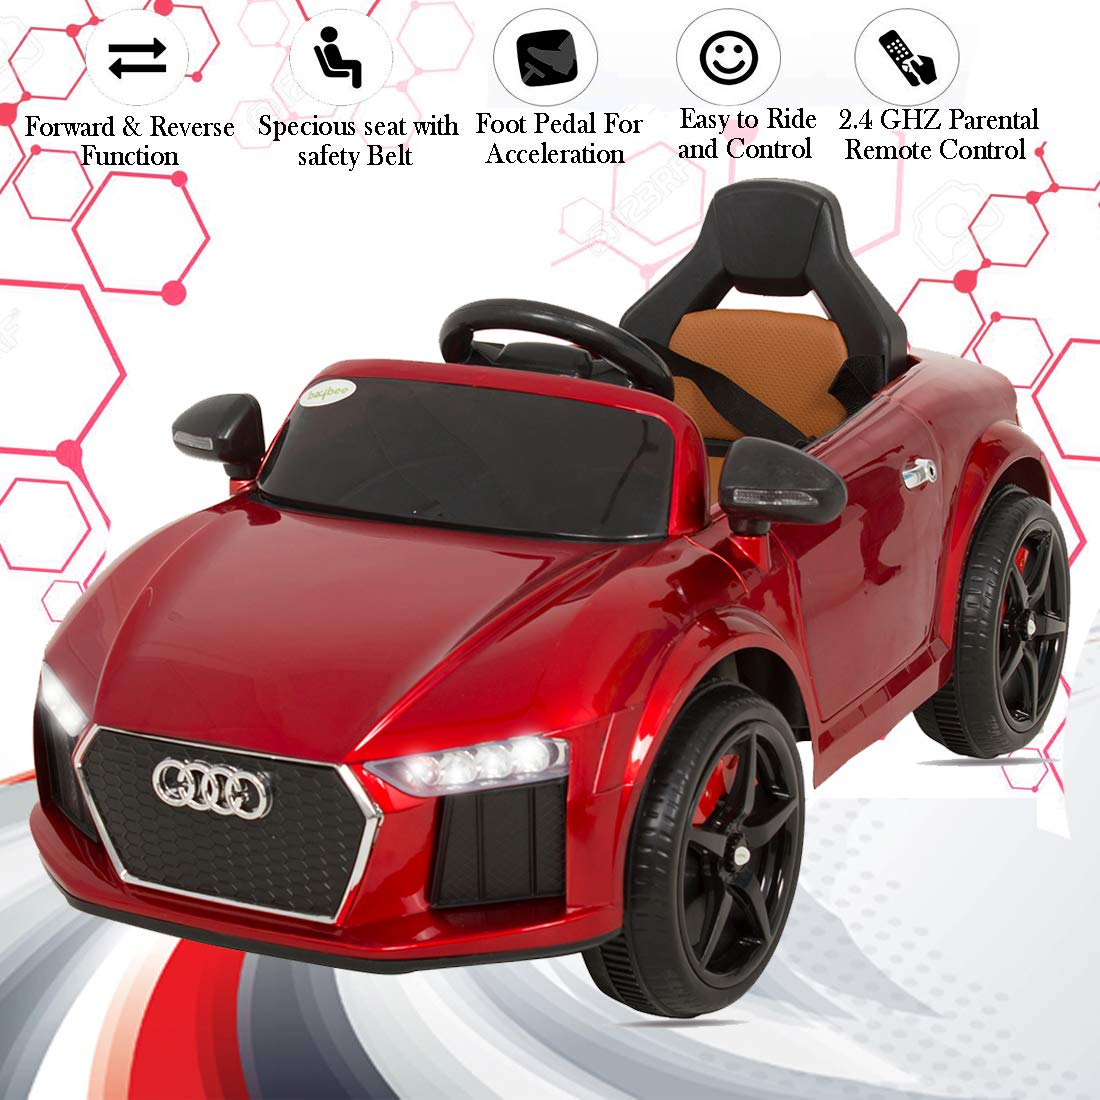 Baybee Audie Battery Operated Ride On Car for Kids with Music, Headlights with 25Kg Weight Capacity Kids Car/ Children Car / Kids Cars to Drive / Baby Car / Electric Car for Kids ( Red )